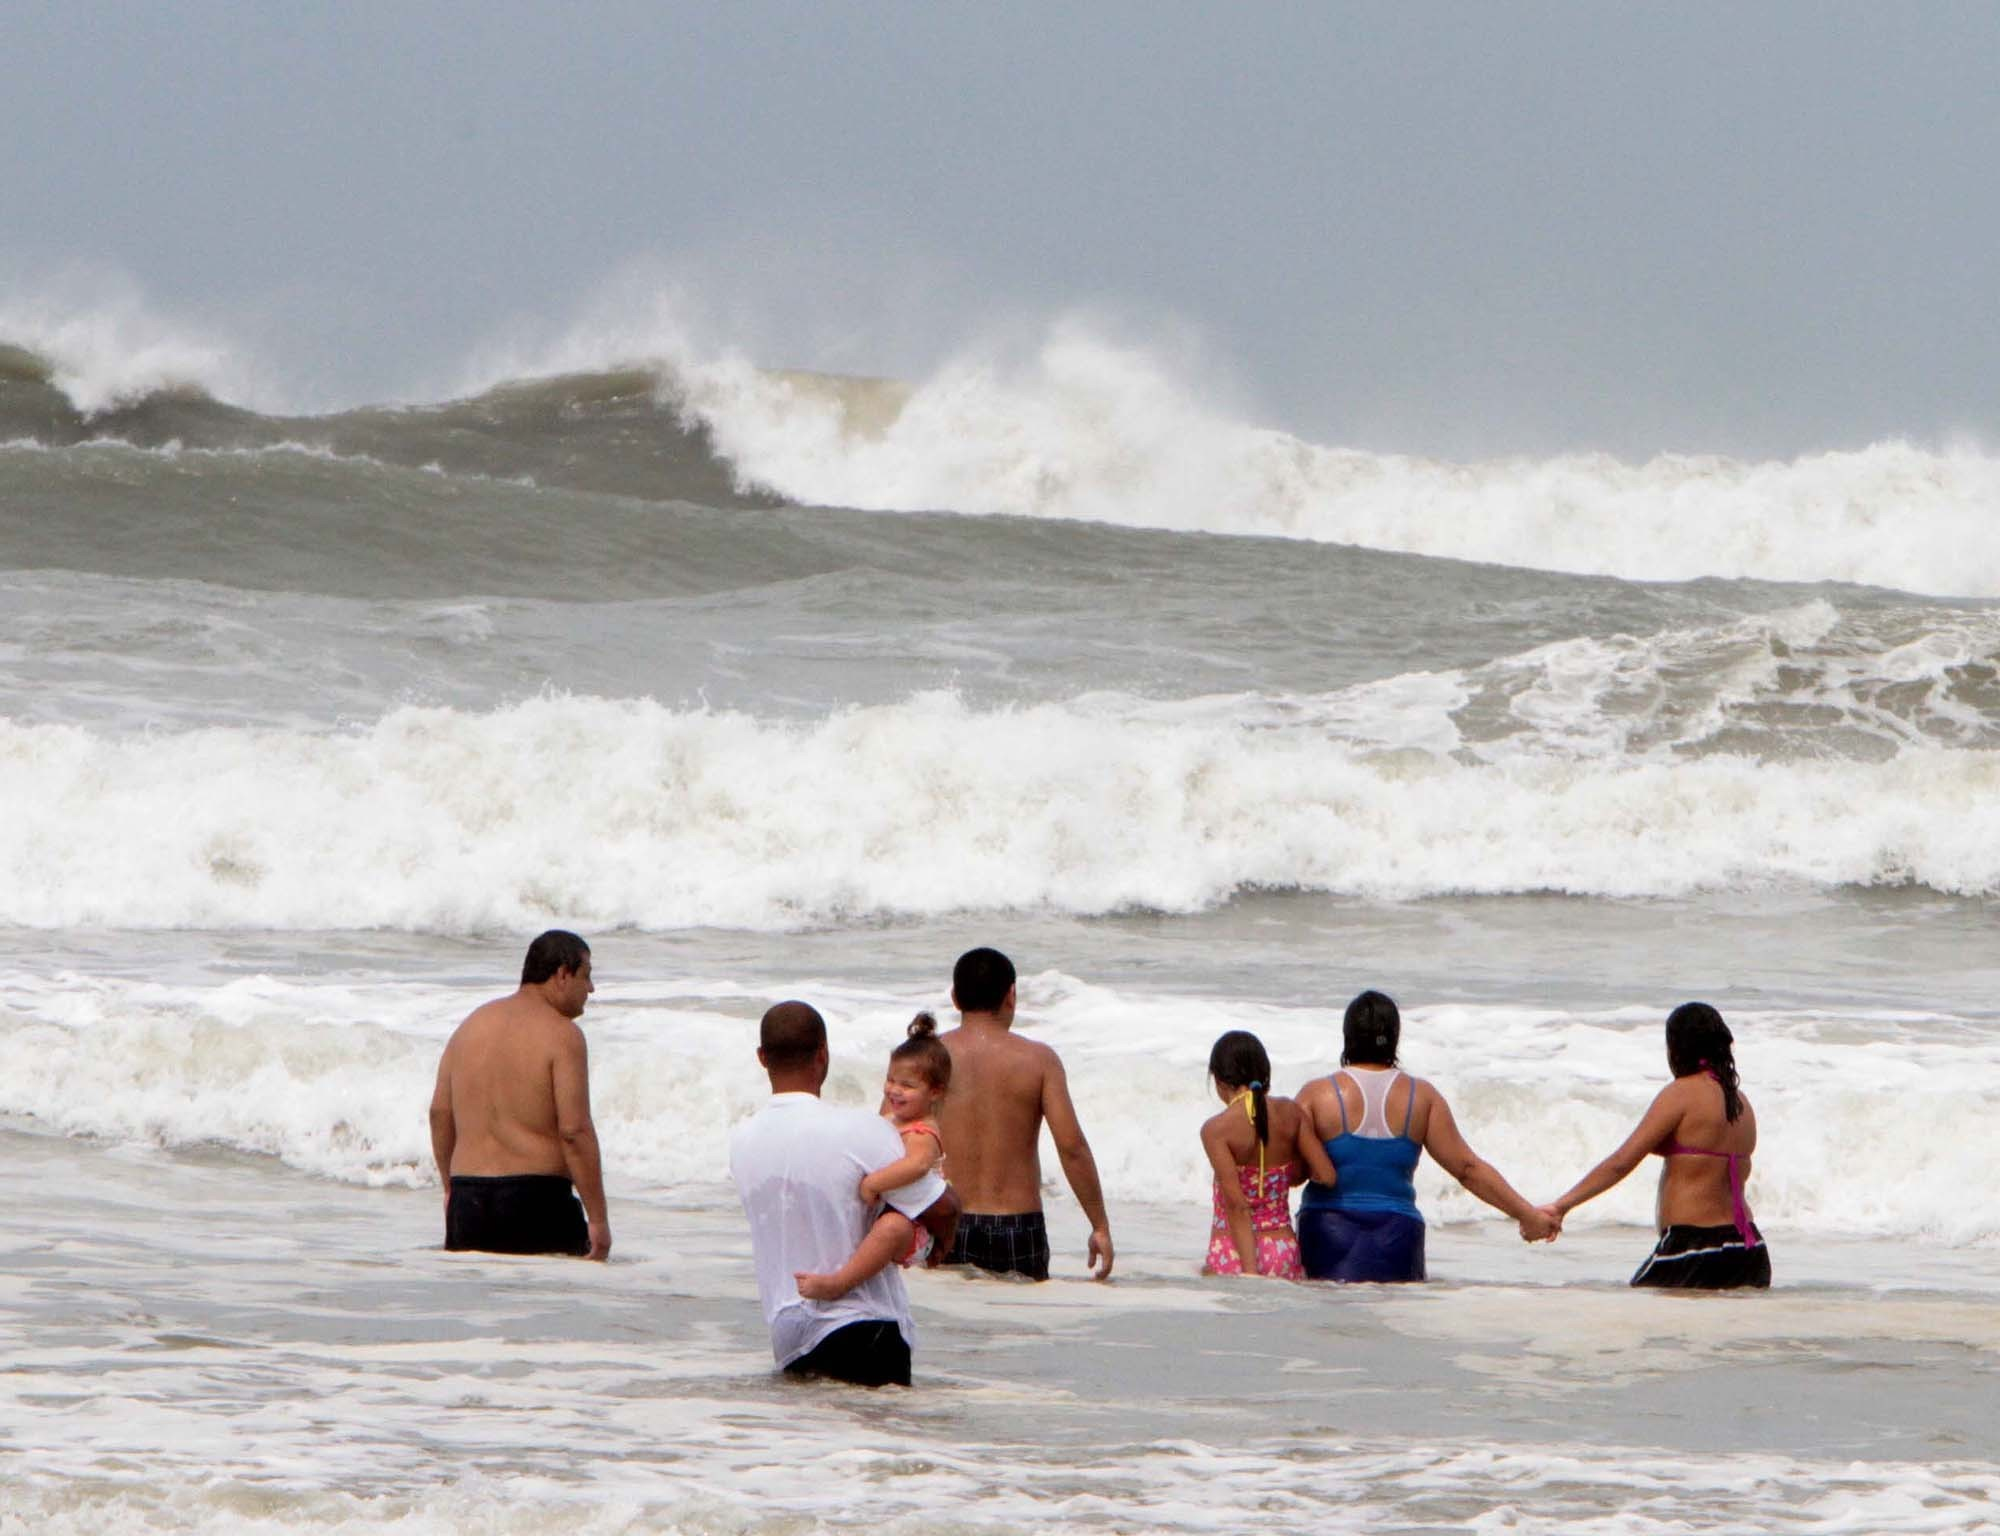 Surf is really up at Daytona Beach on Sunday, May 28, 2012, for Memorial Day weekend revelers.